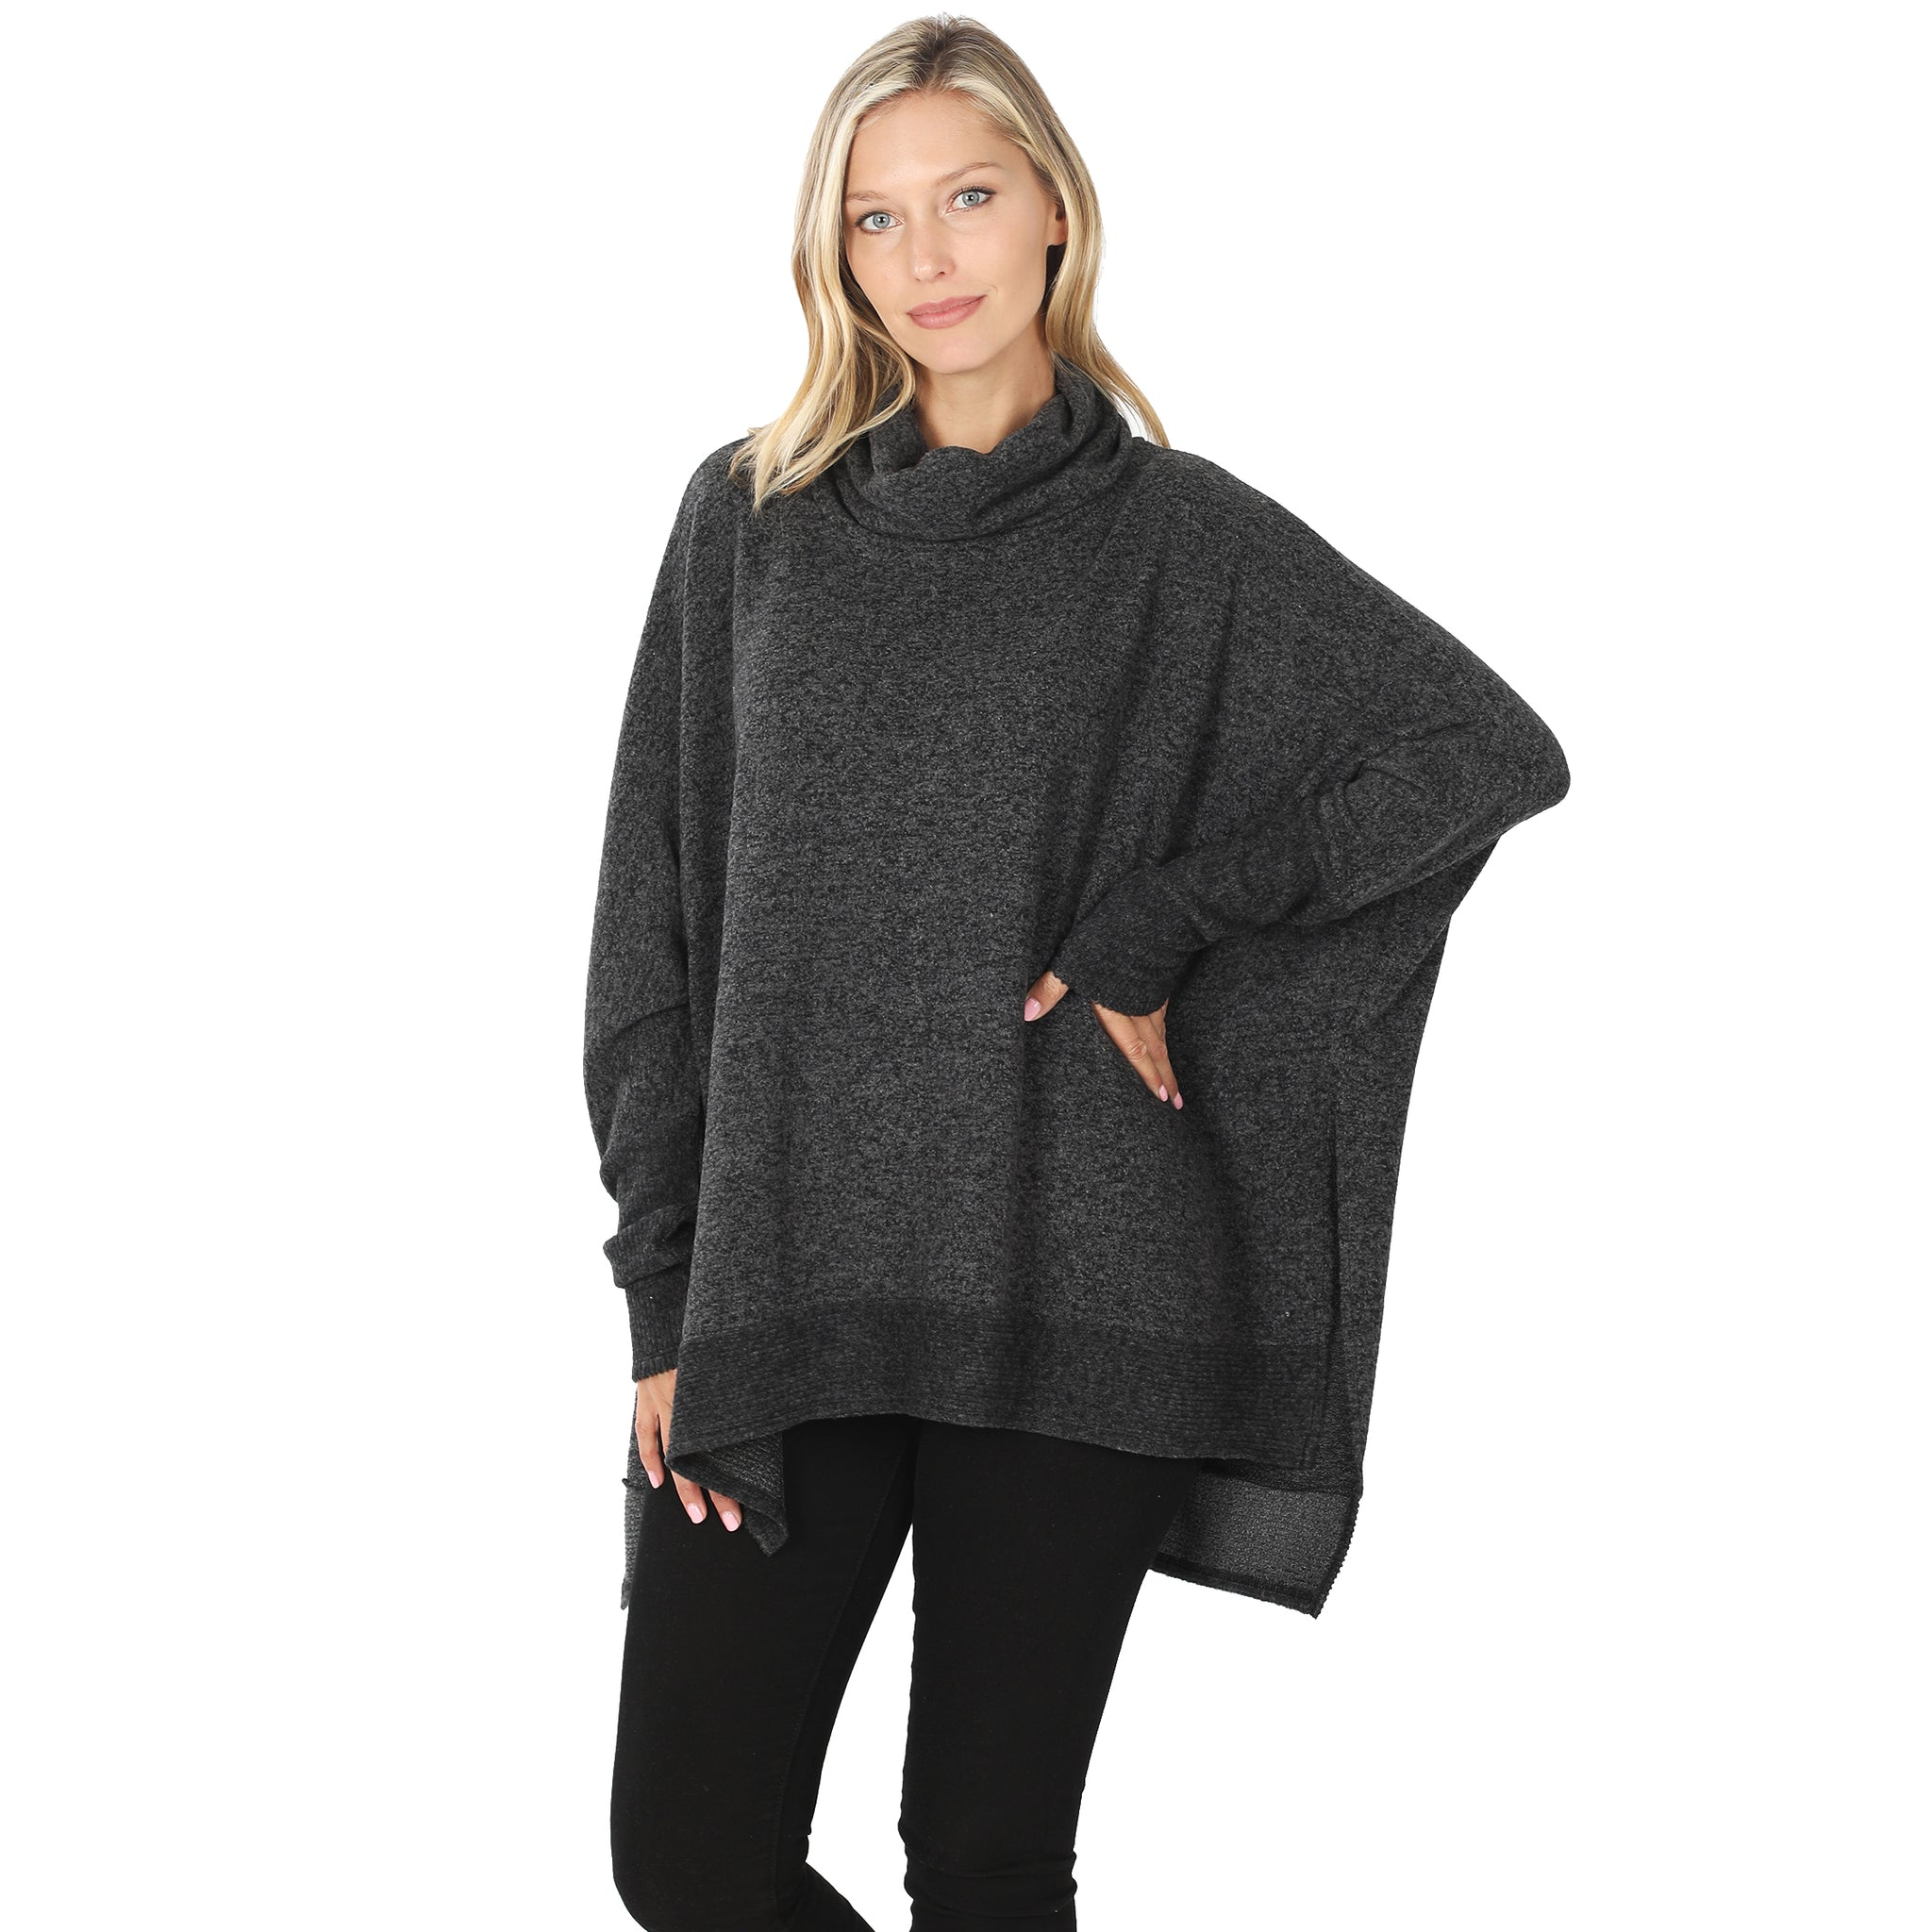 Cowl Neck Oversized High-Low Sweater in Black